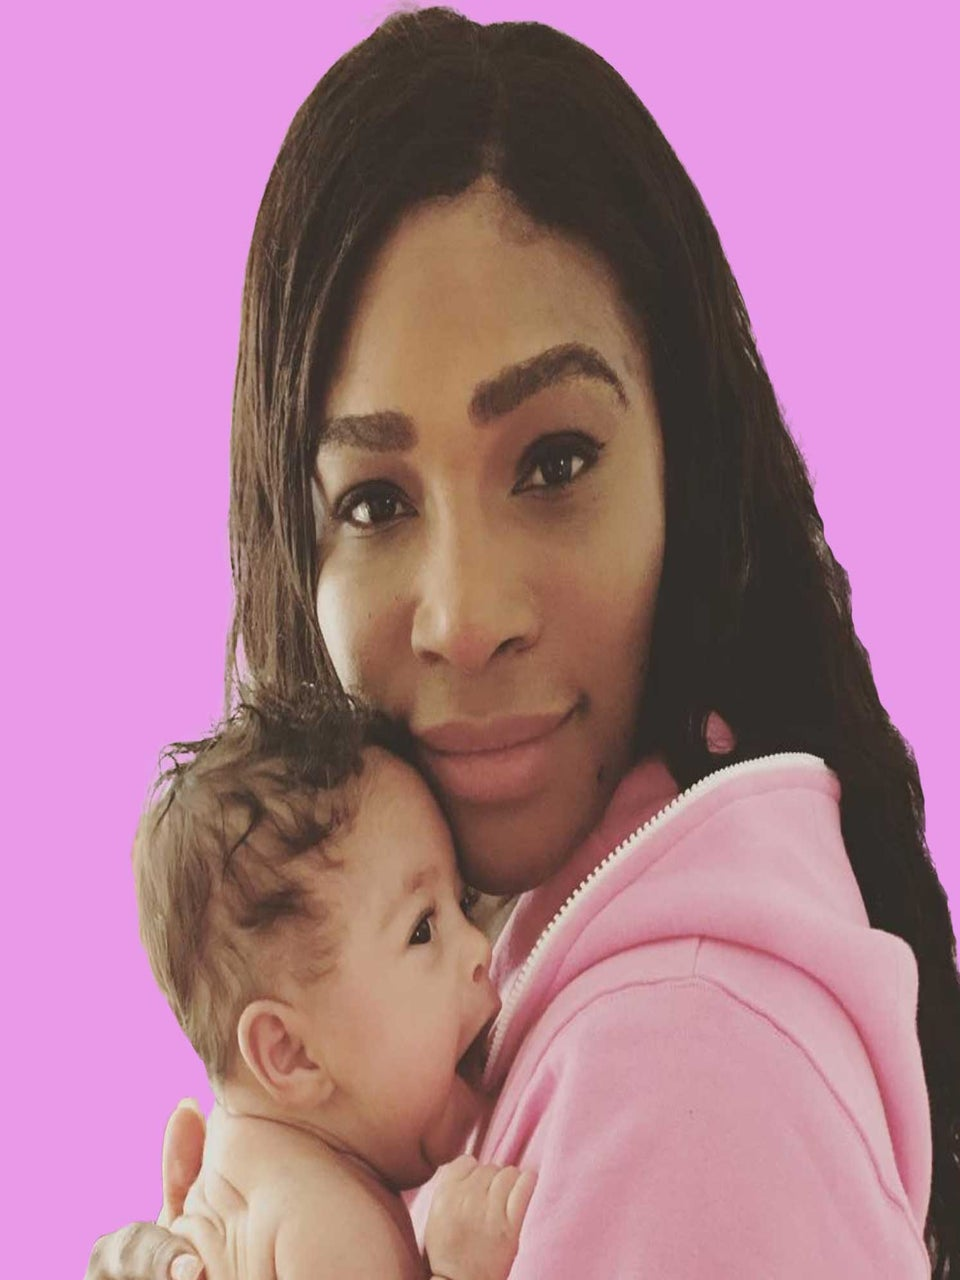 Serena Williams Shares A Heartfelt Message WithDaughter In New Gatorade Commercial